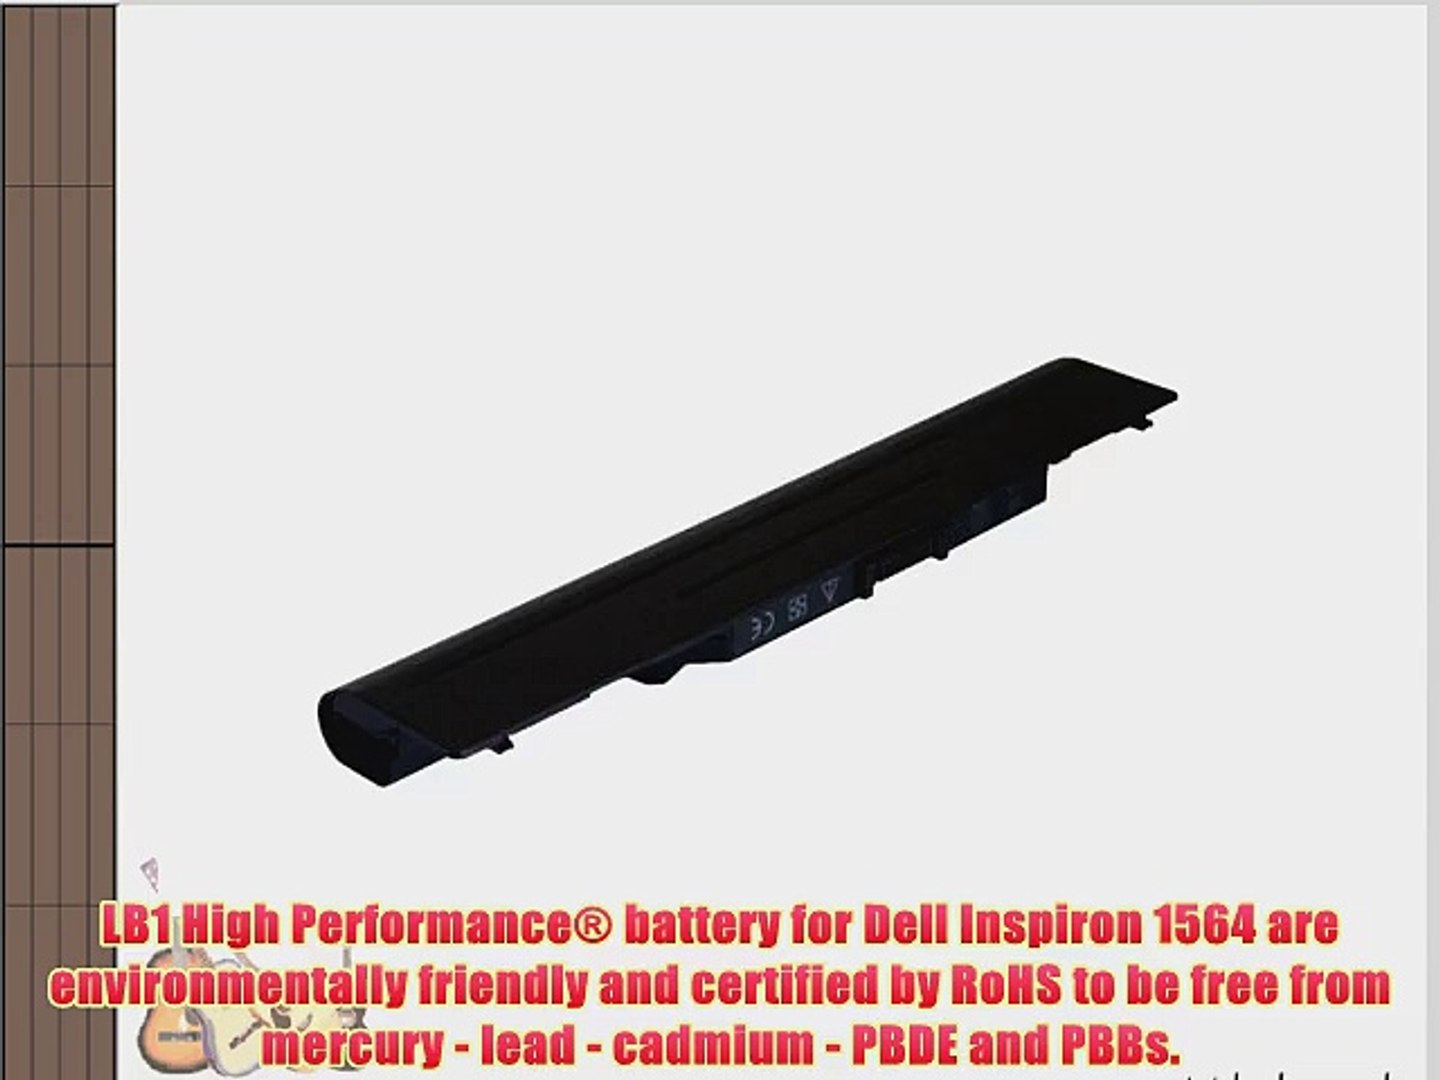 LB1 High Performance Battery for Dell Inspiron 1564 18 Months Warranty